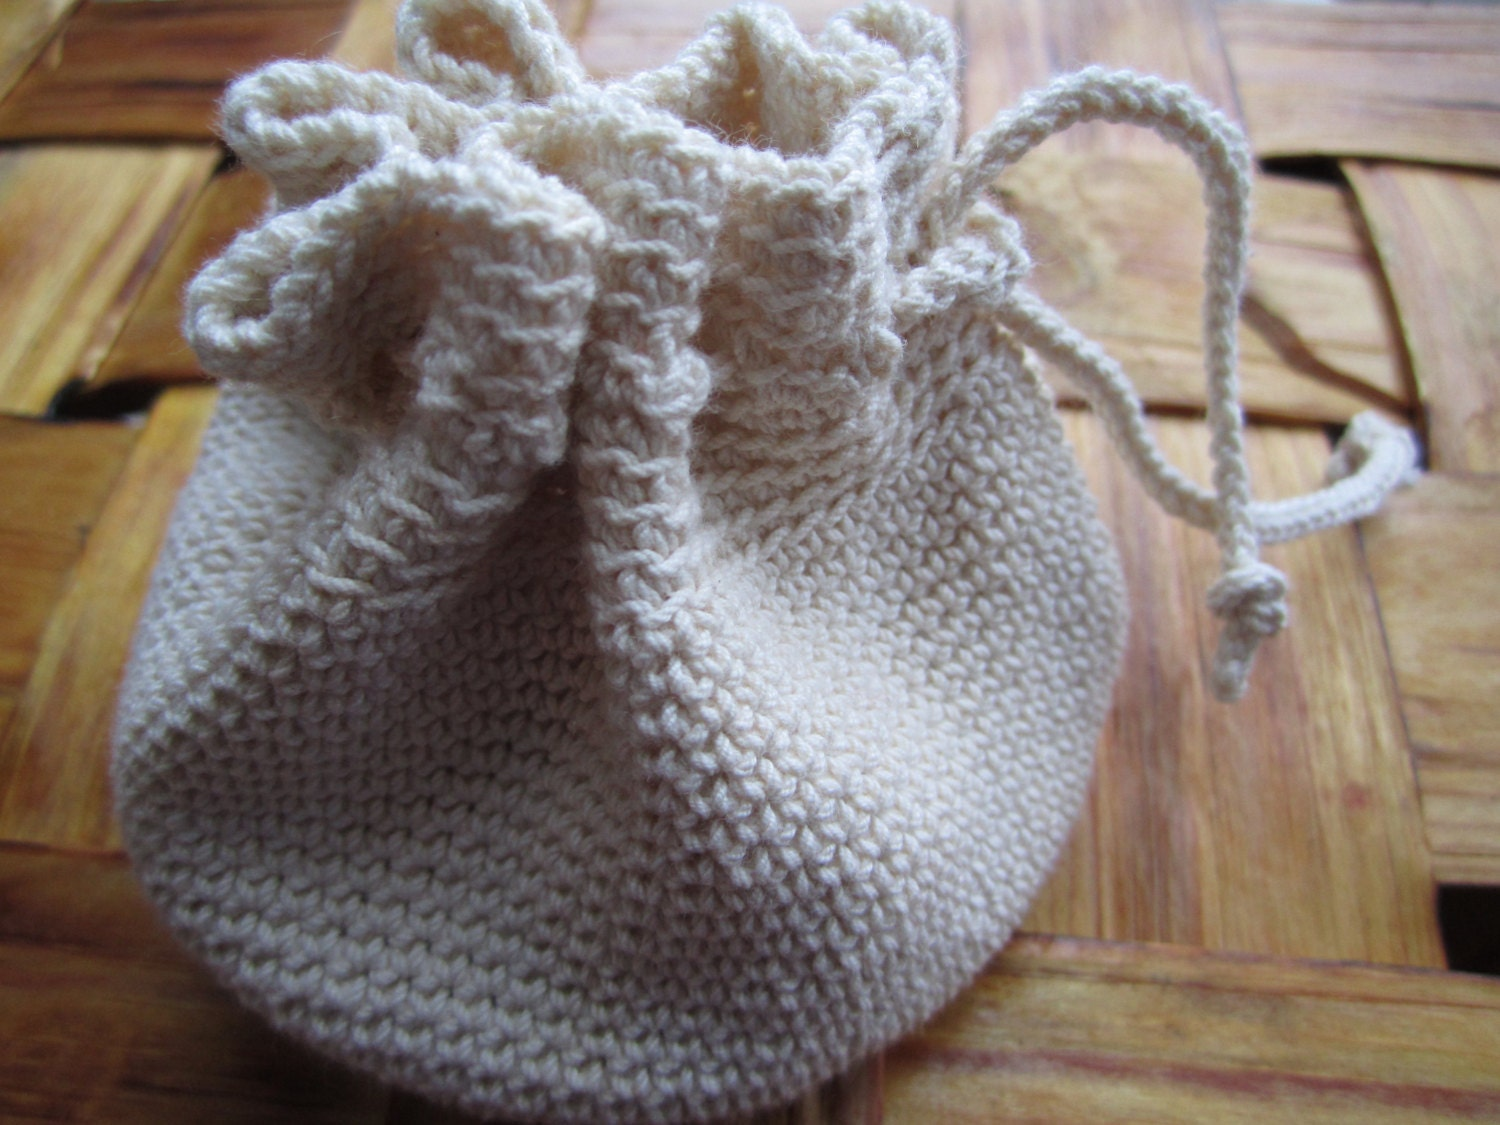 Crochet Drawstring Bag : Crochet Purse Drawstring Pouch Valentine Gift Bag by EdithEmil